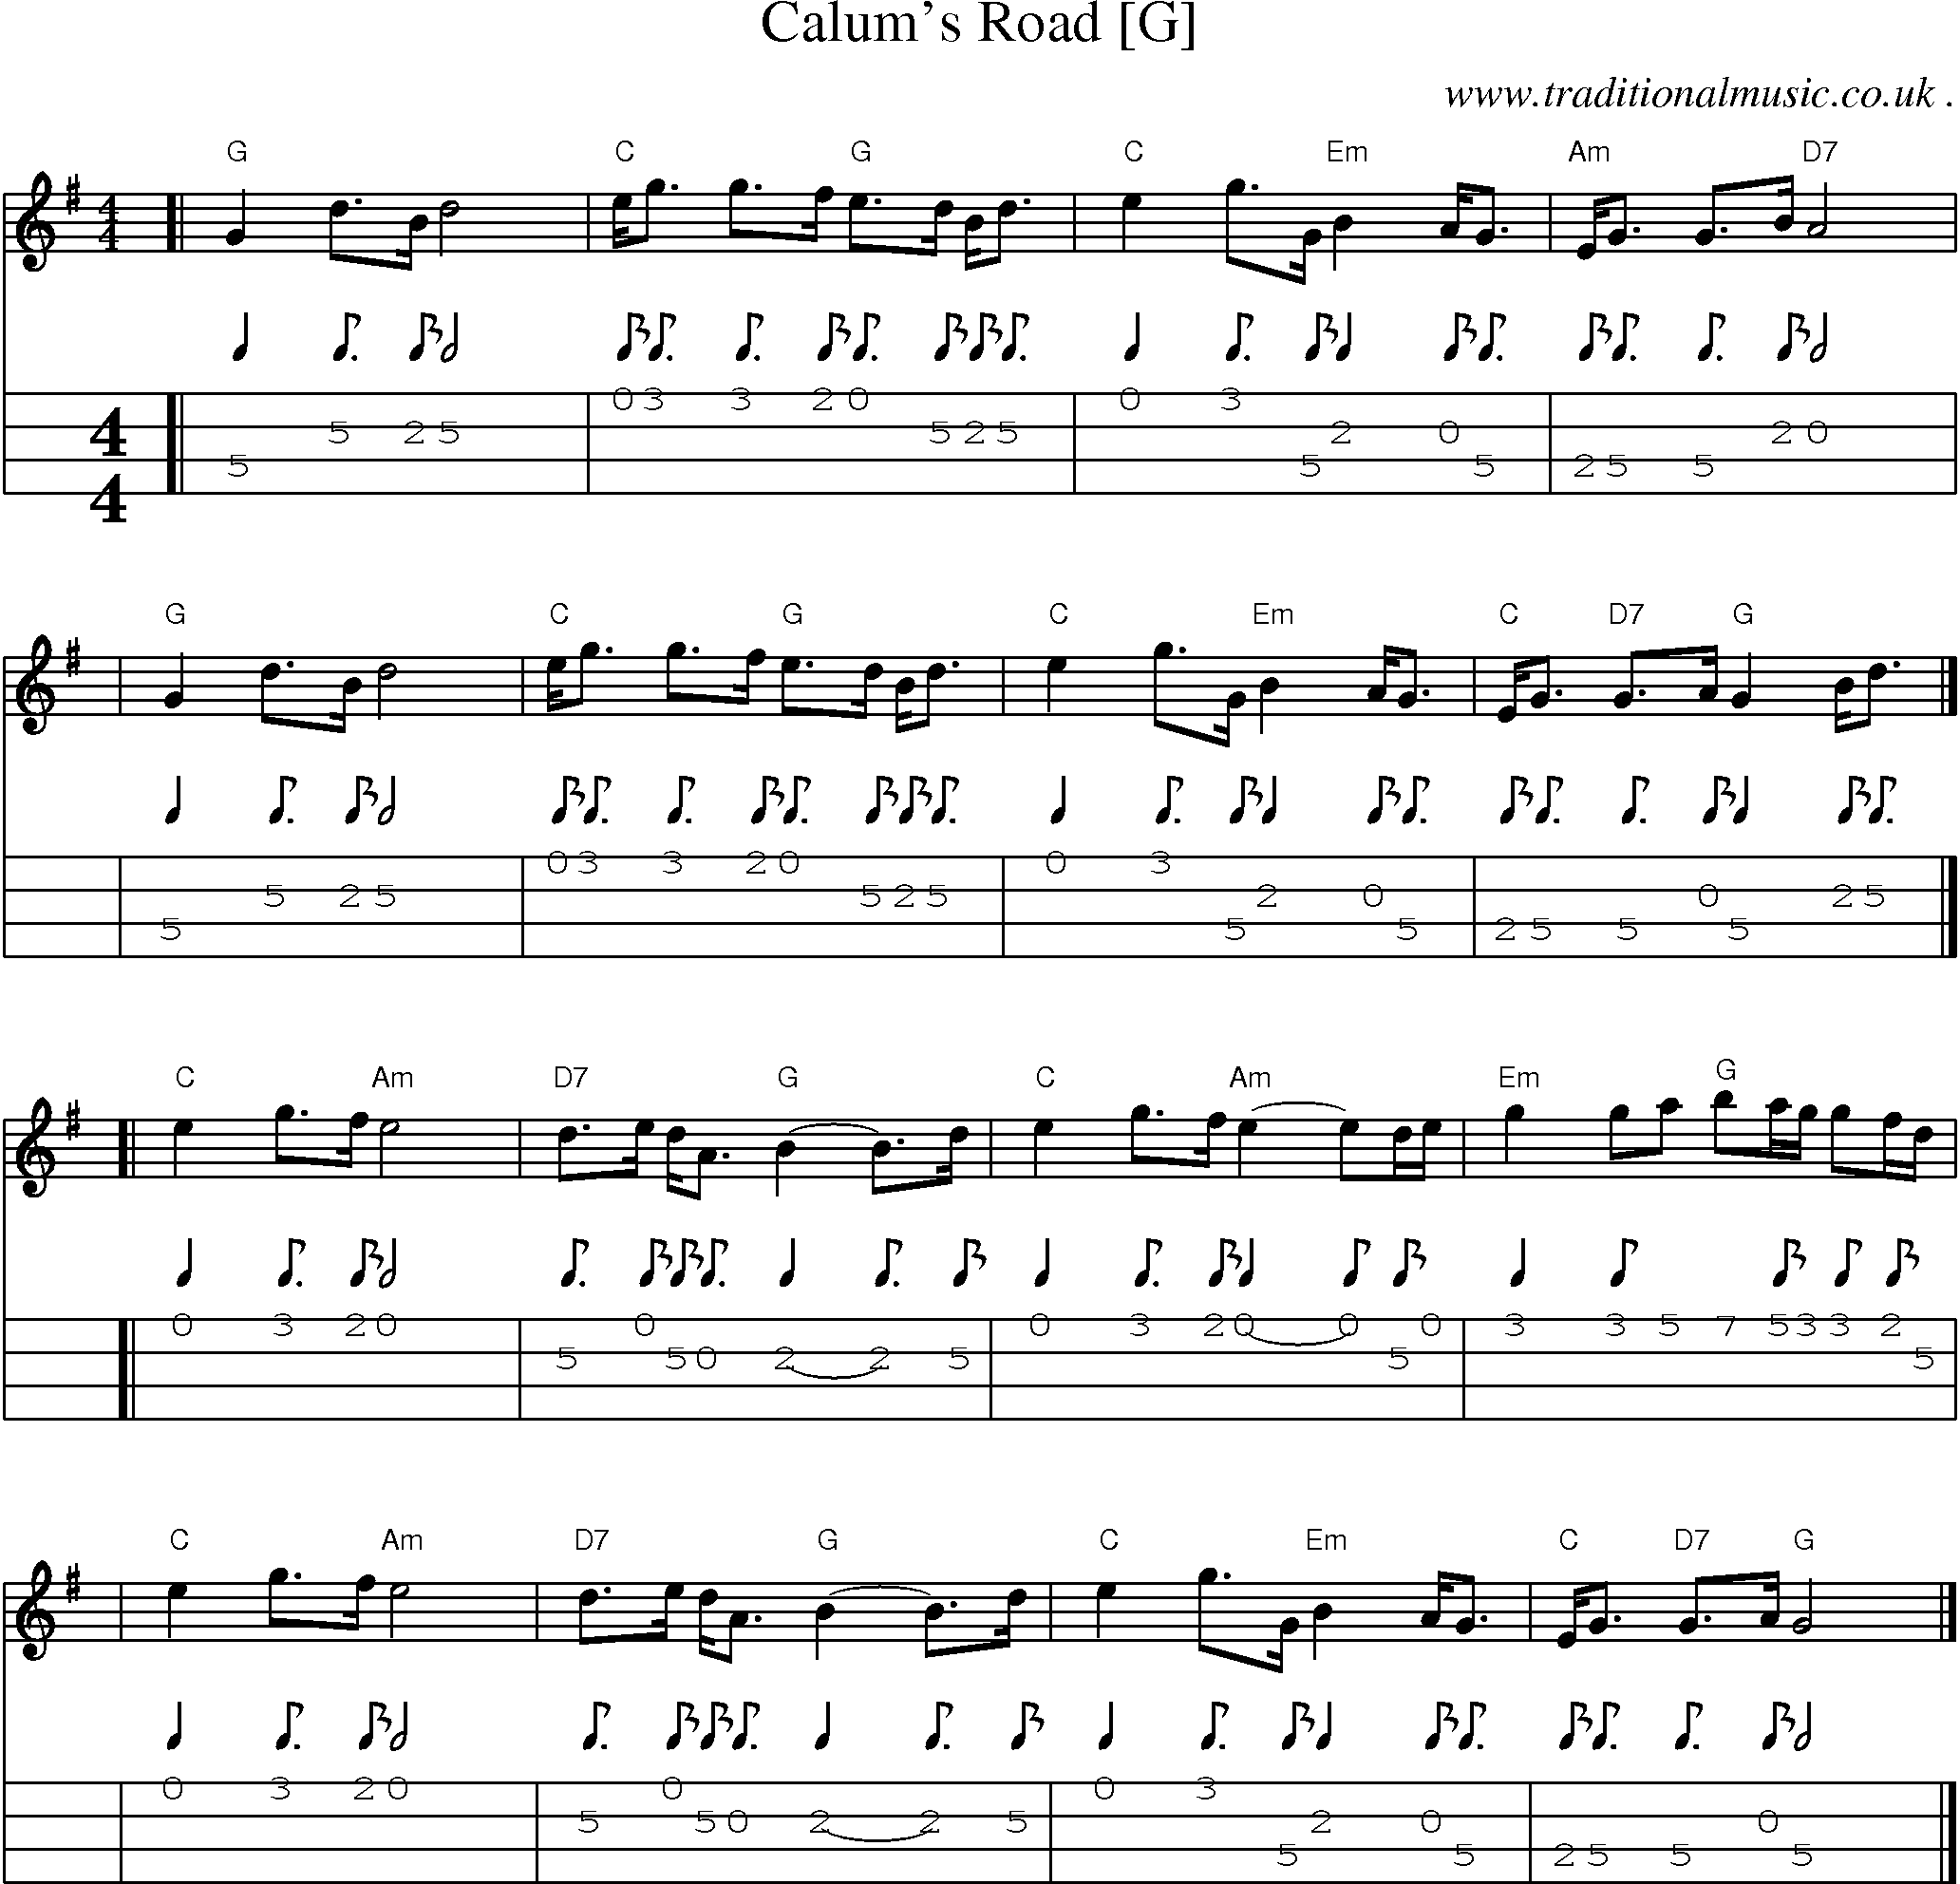 Sheet Music Score Chords And Mandolin Tabs For Calums Road G